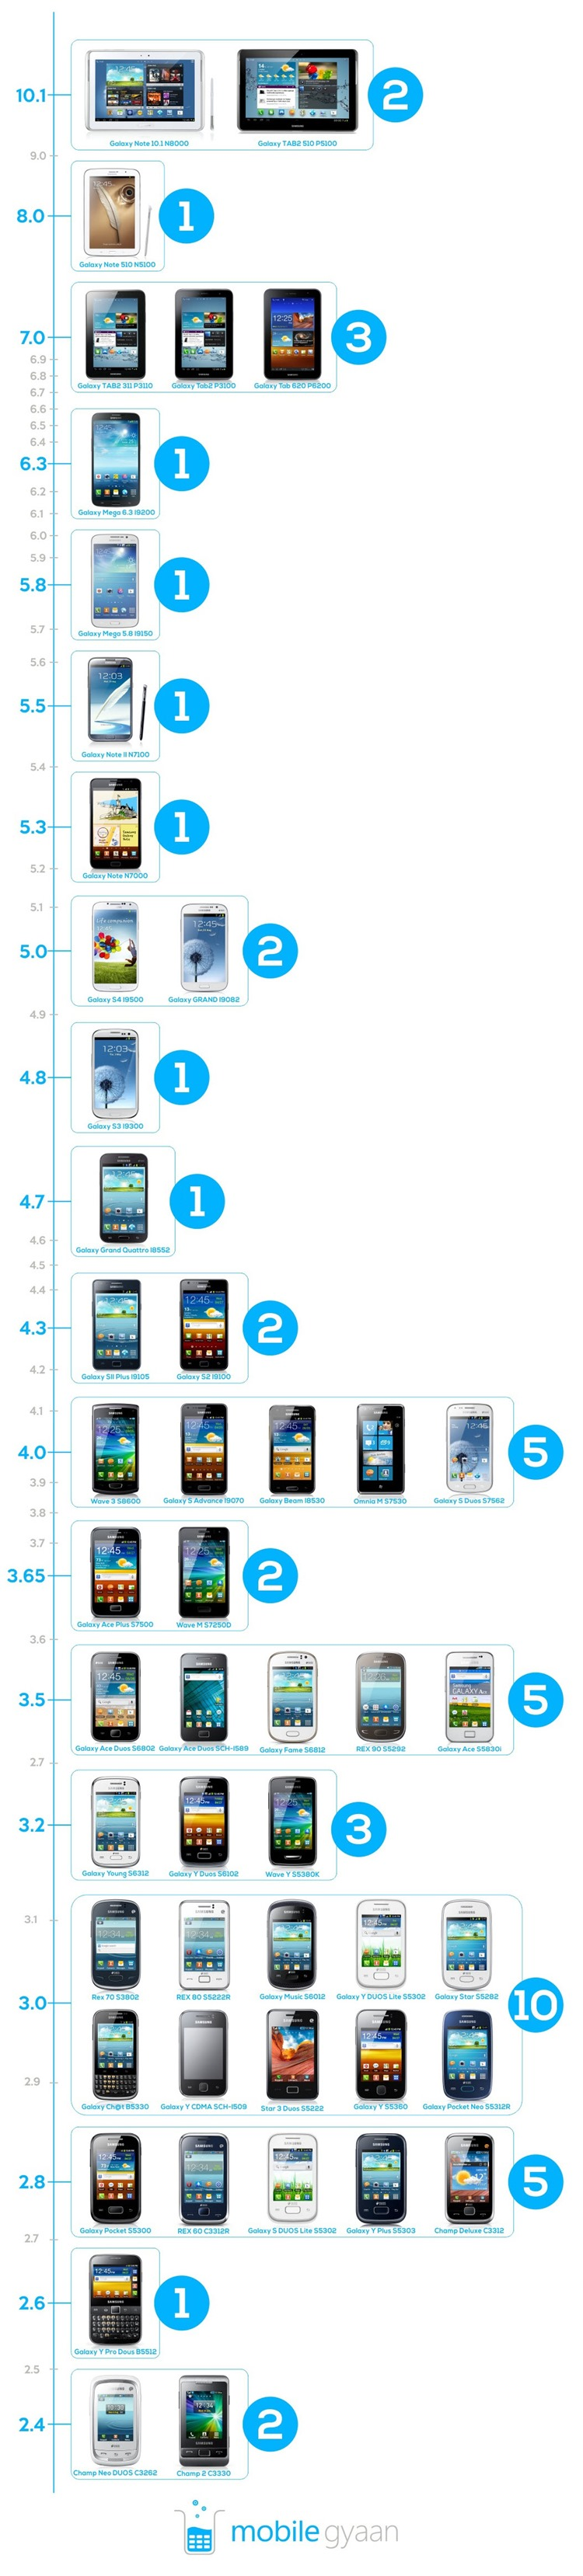 Infographic of samsung phones in India